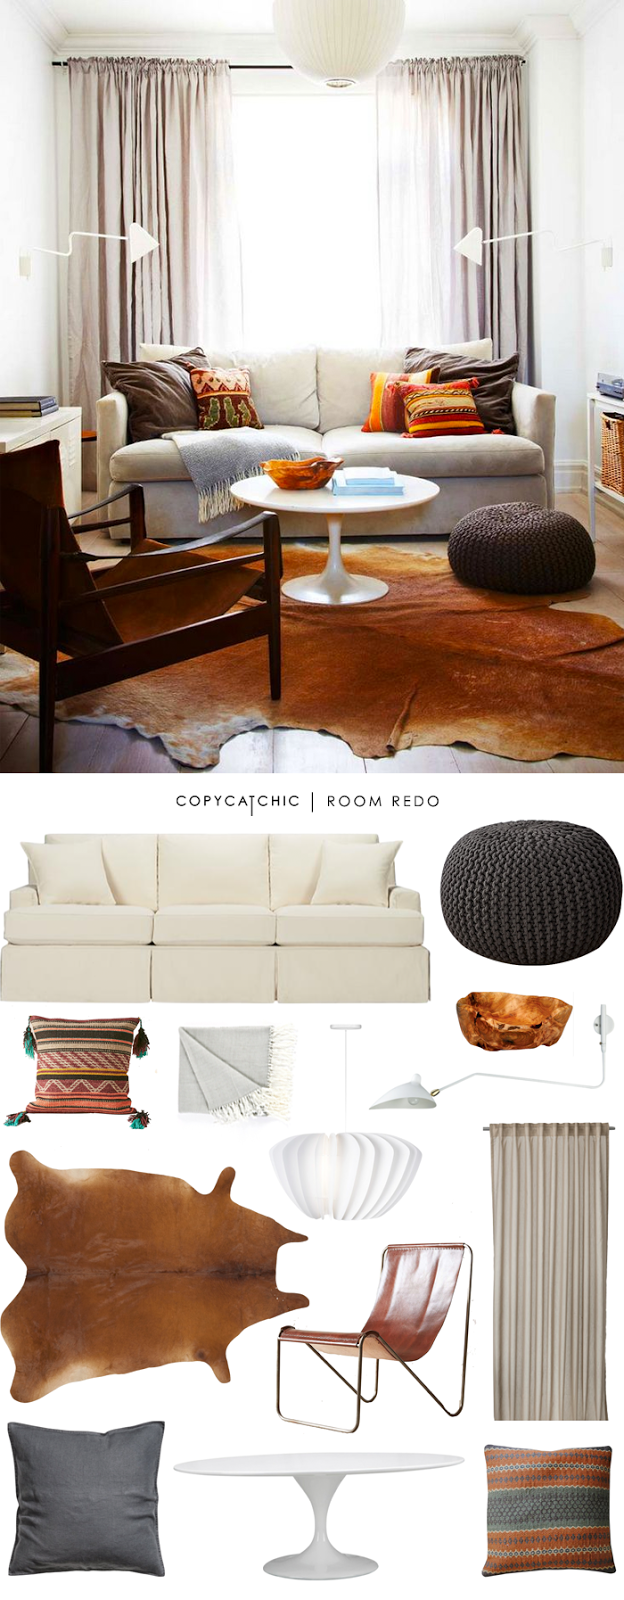 Copycatchic-Cozy-Boho-Eclectic-Living-Room-1 - copycatchic